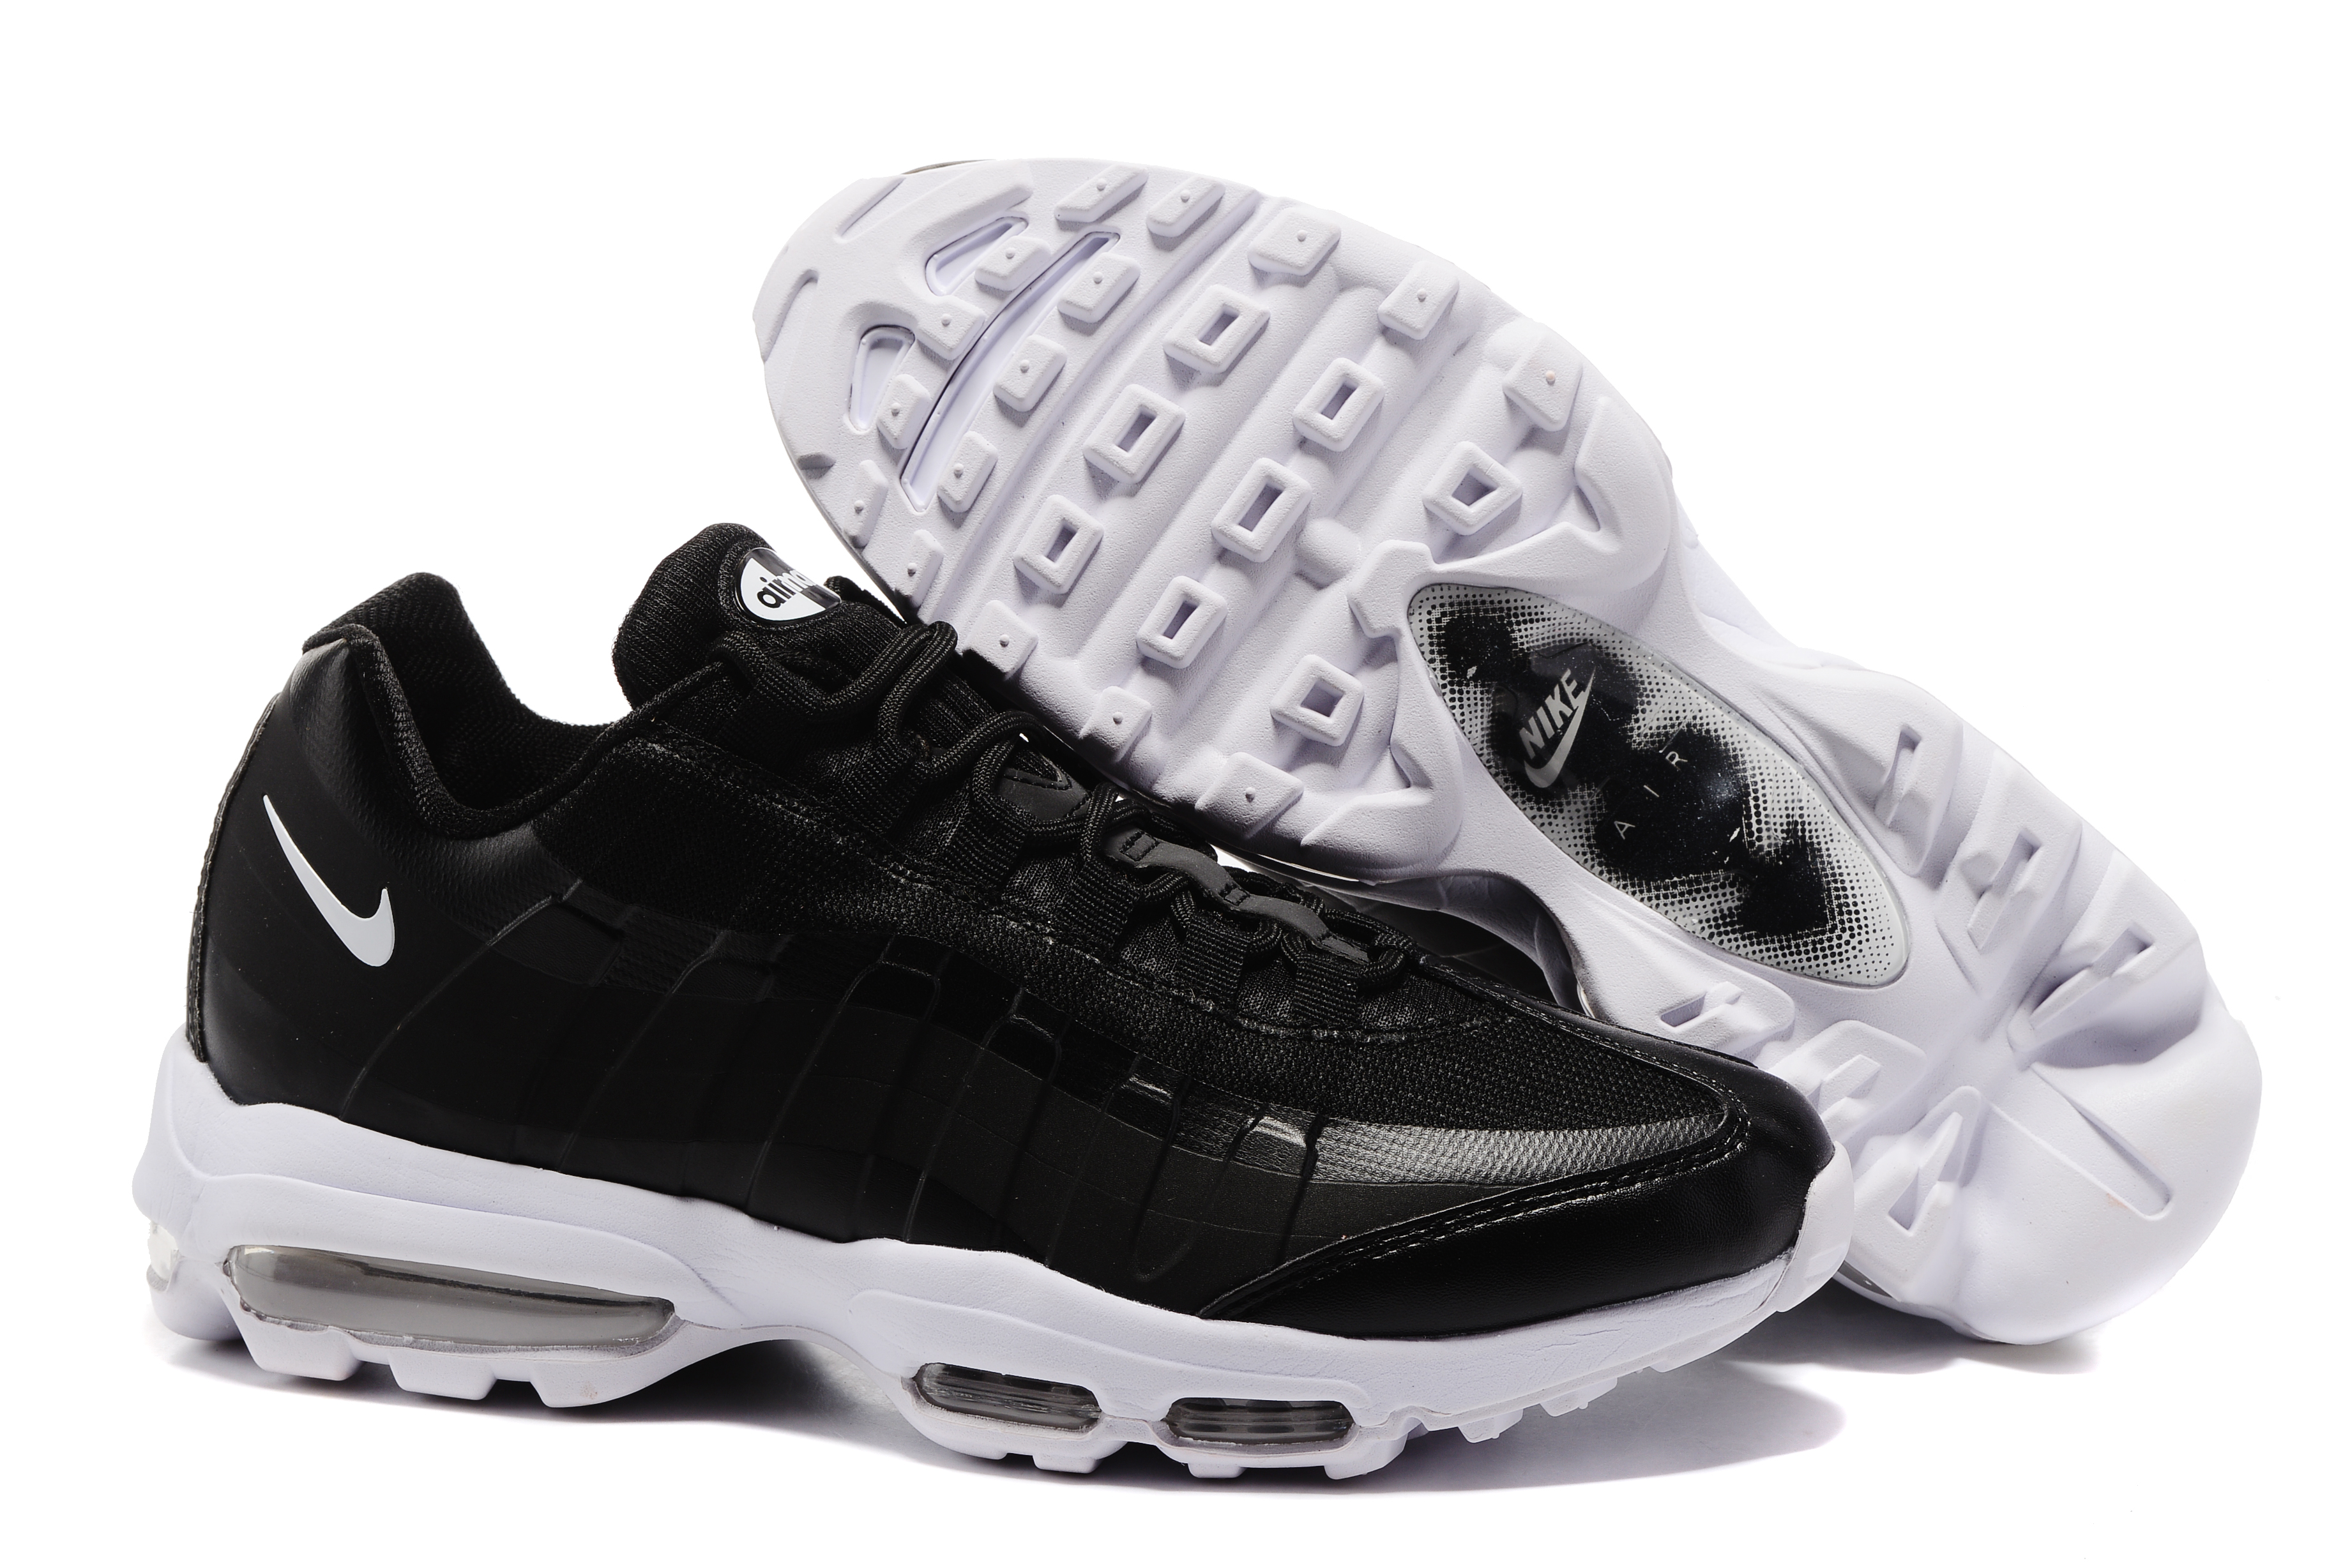 Nike Air Max 95 Black White Shoes